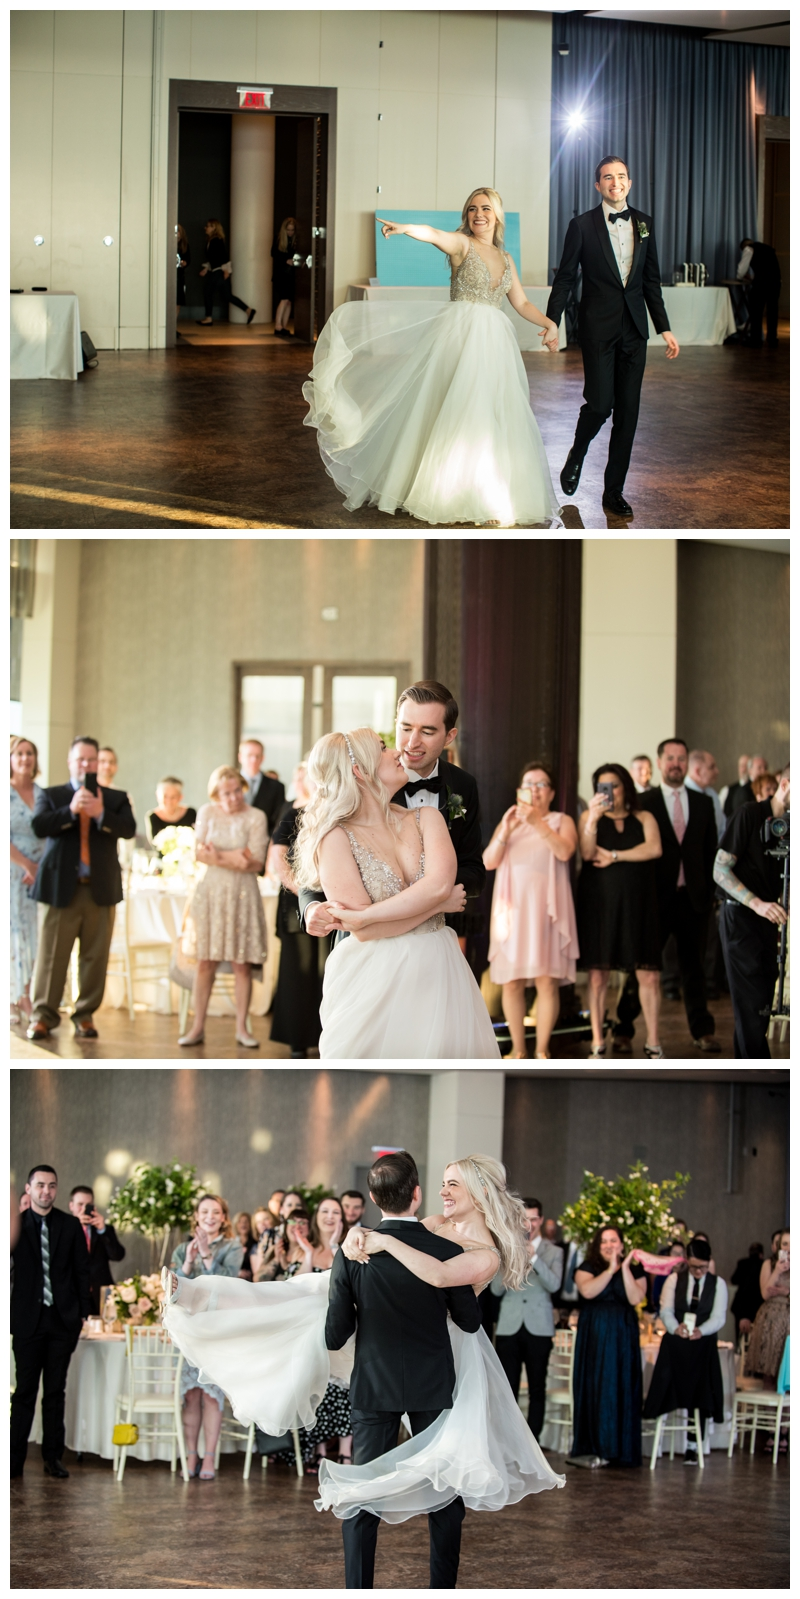 Such an impressive First Dance by the newlyweds.